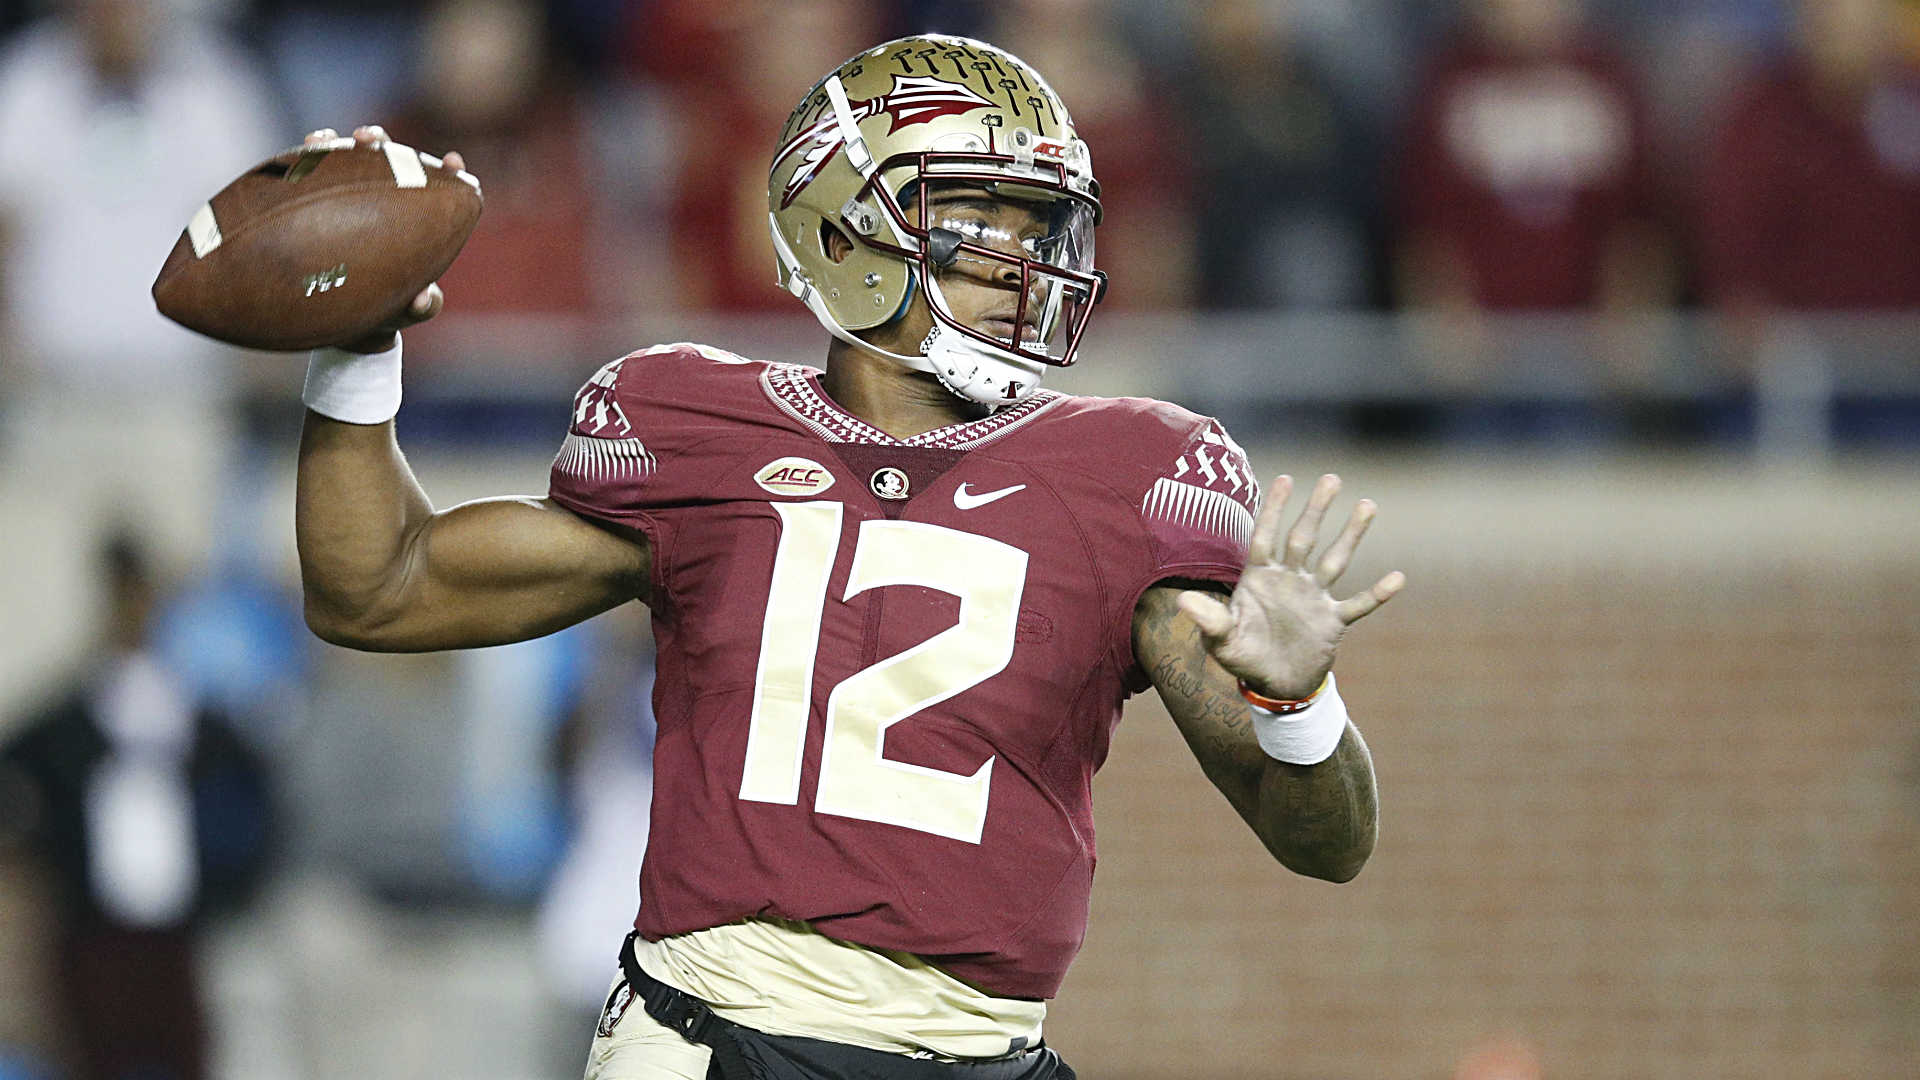 Deondre Francois involved in domestic incident, no charges filed